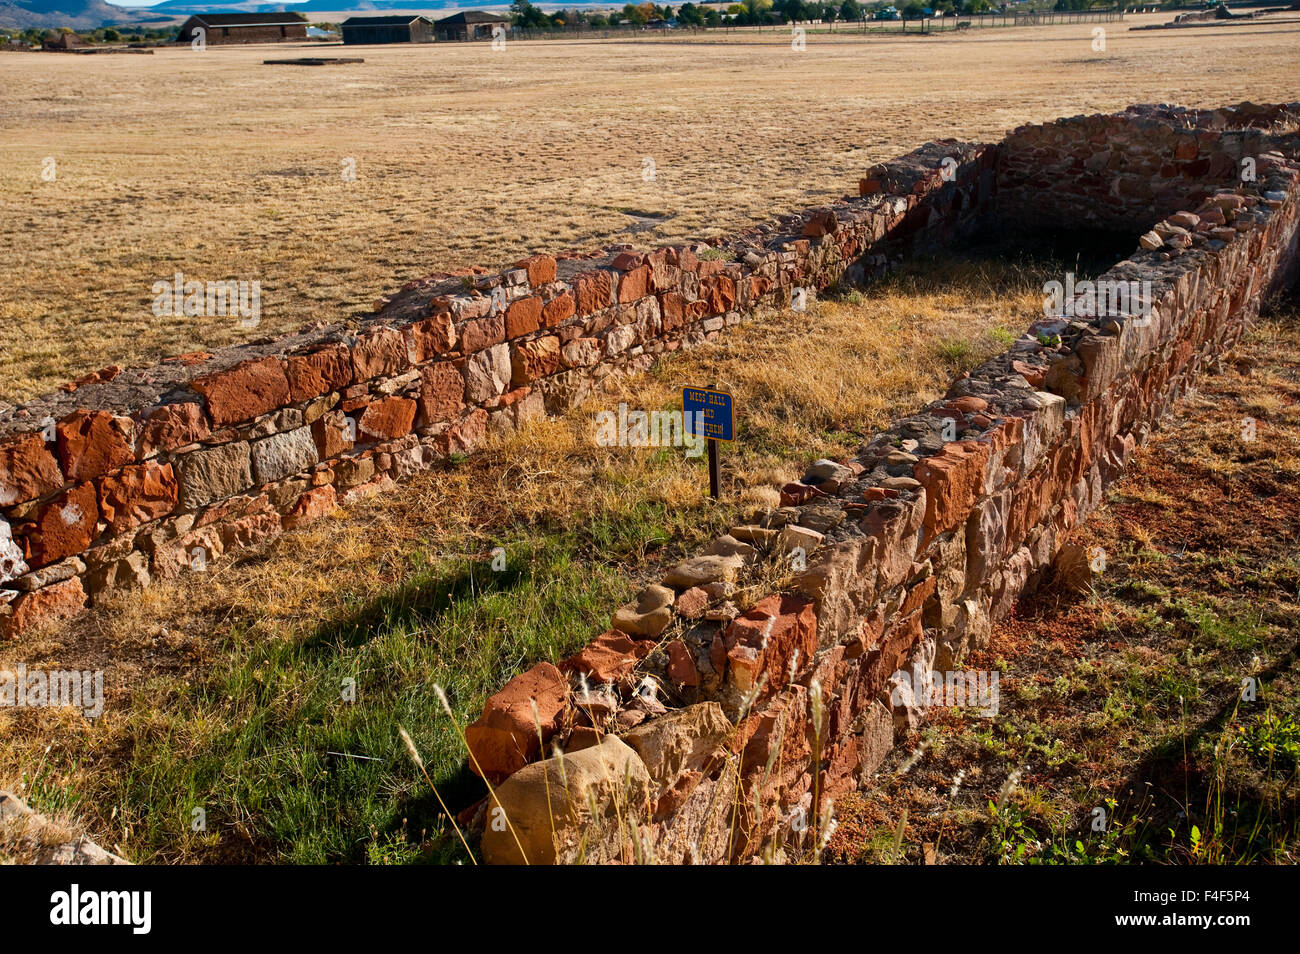 USA, Fort Davis National Historic Site, Texas, Foundation Ruins of Mess Hall and Kitchen. - Stock Image